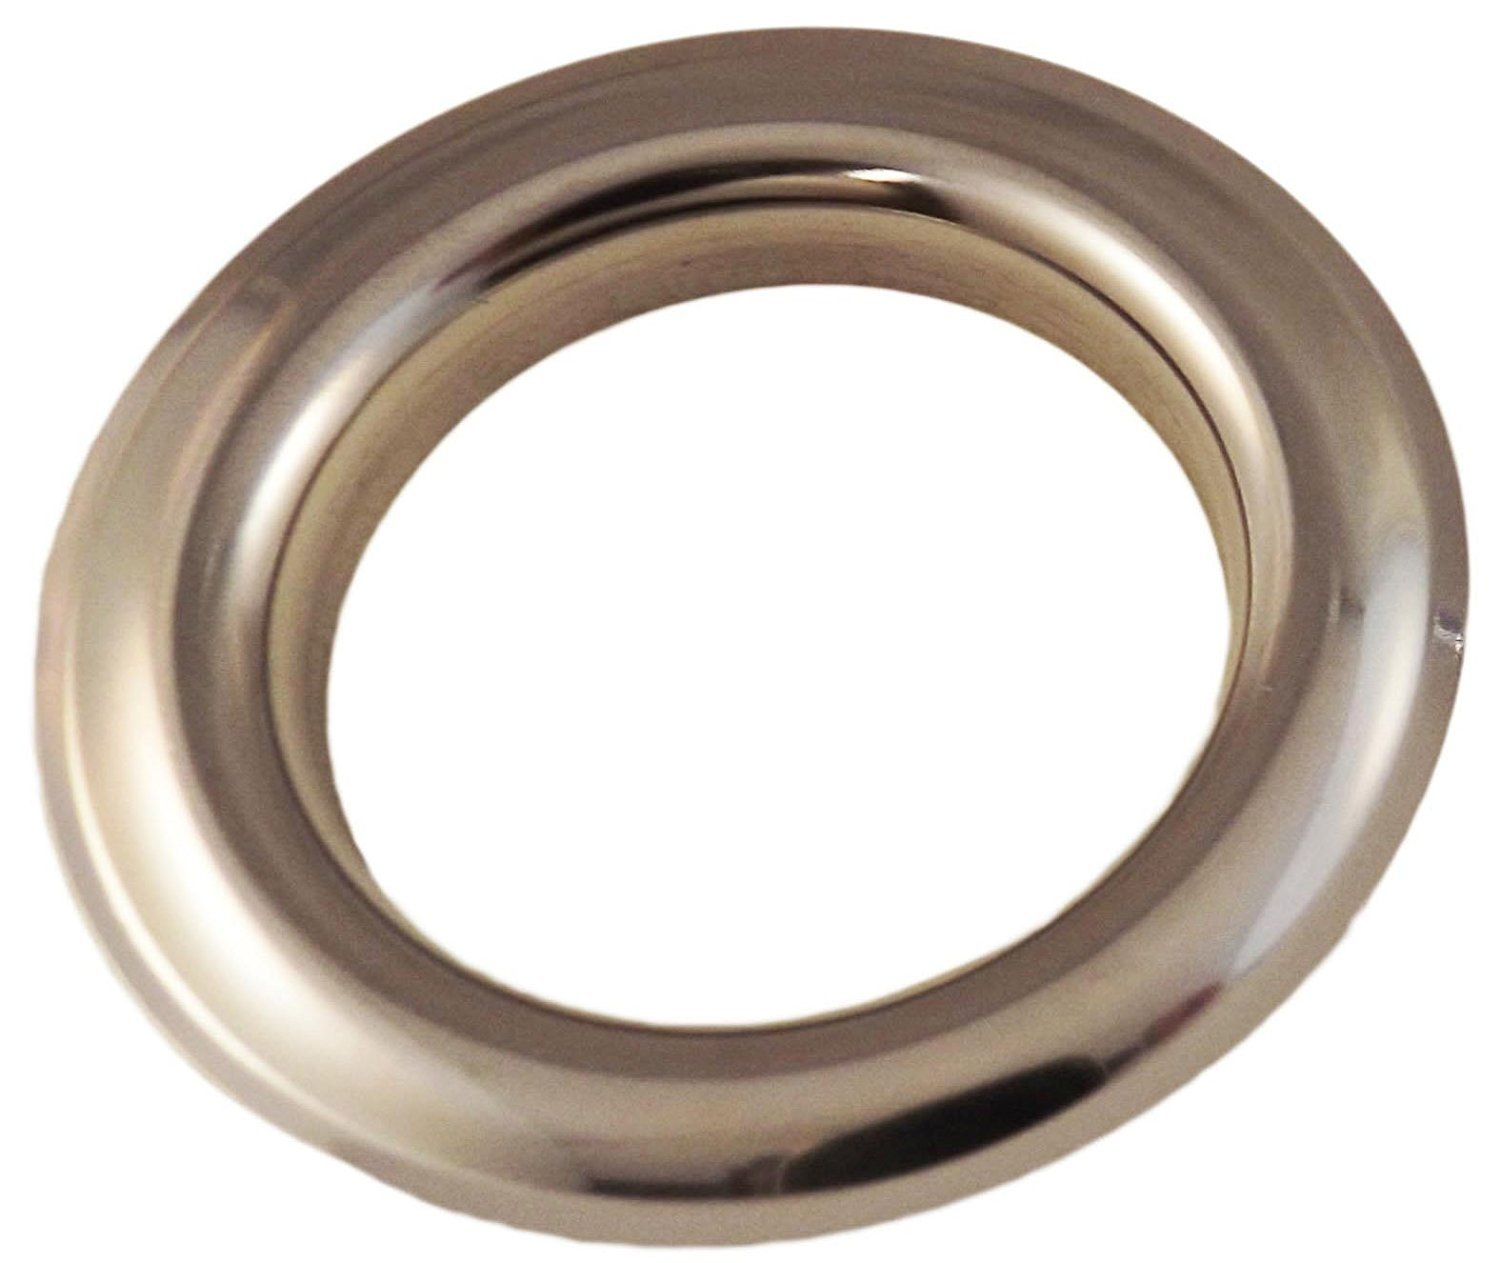 Large Chrome Metal Curtain Drapery Hardware Supplies #12 - 1 9/16 inch Inner Diameter Decorative Grommet/Rings w/Washer Eyelet Lot of 10 / 25 / 50 / 100 pcs (Pack Of 10) Lushes Curtains